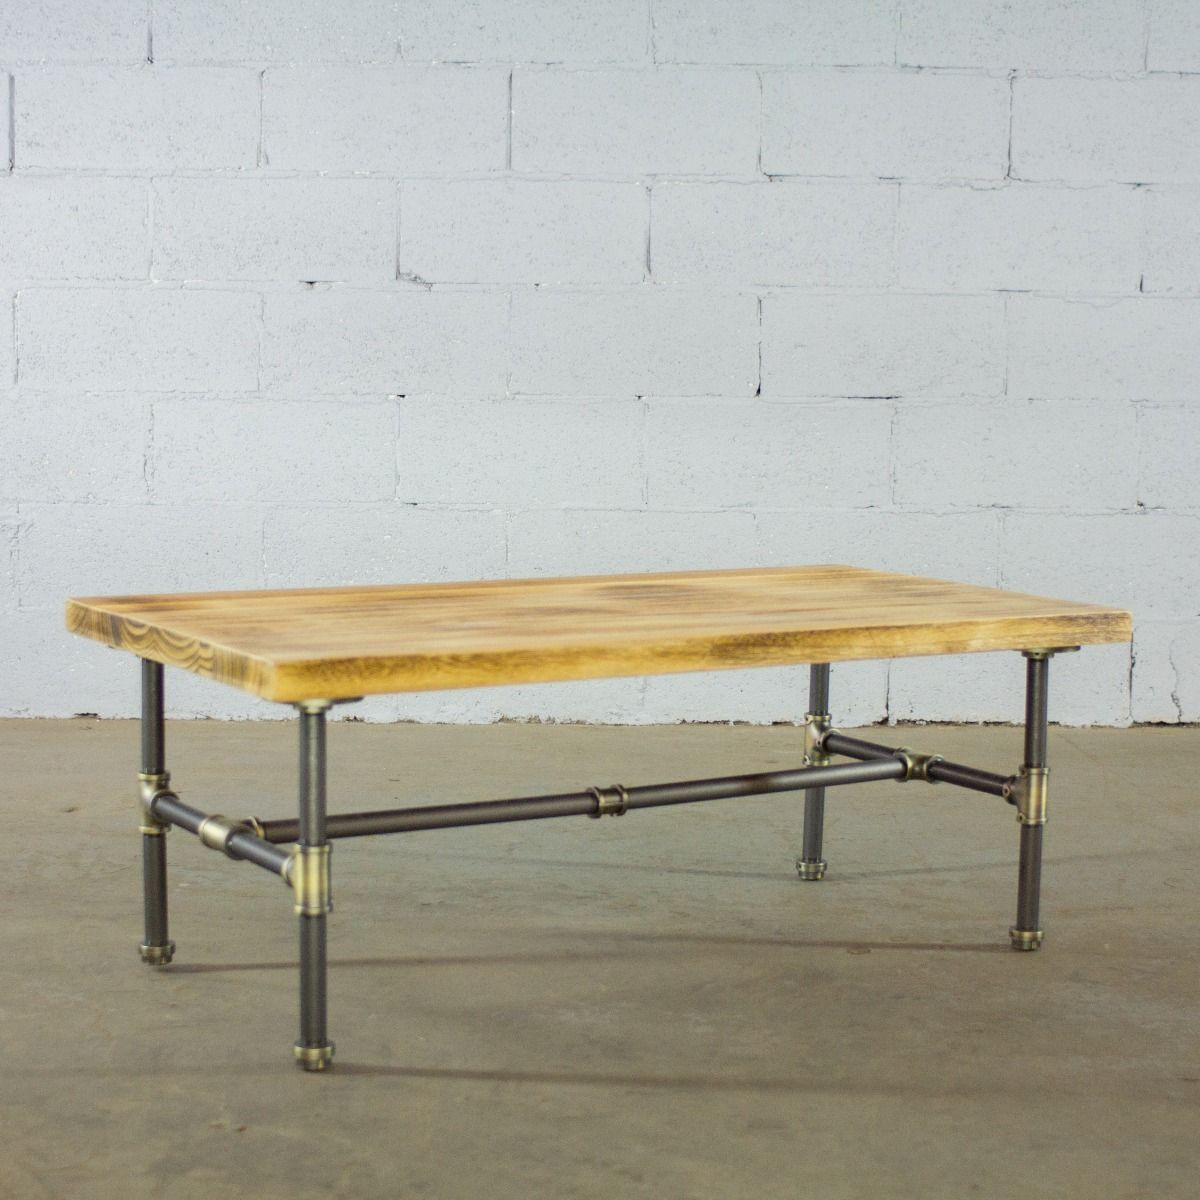 Modern Industrial Rectangular Coffee Table - MODERNY